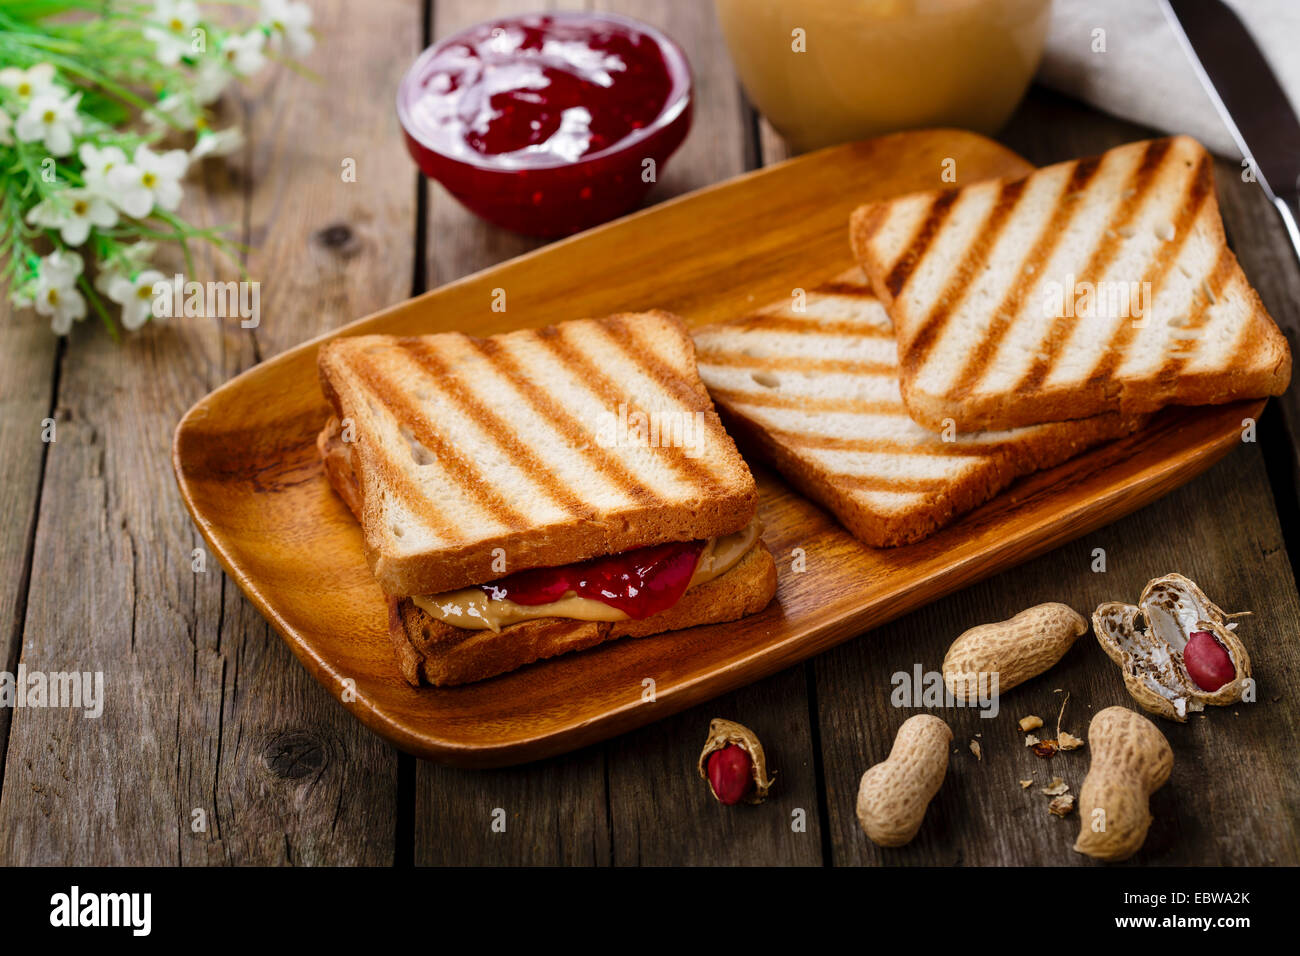 peanut butter sandwich with jam - Stock Image